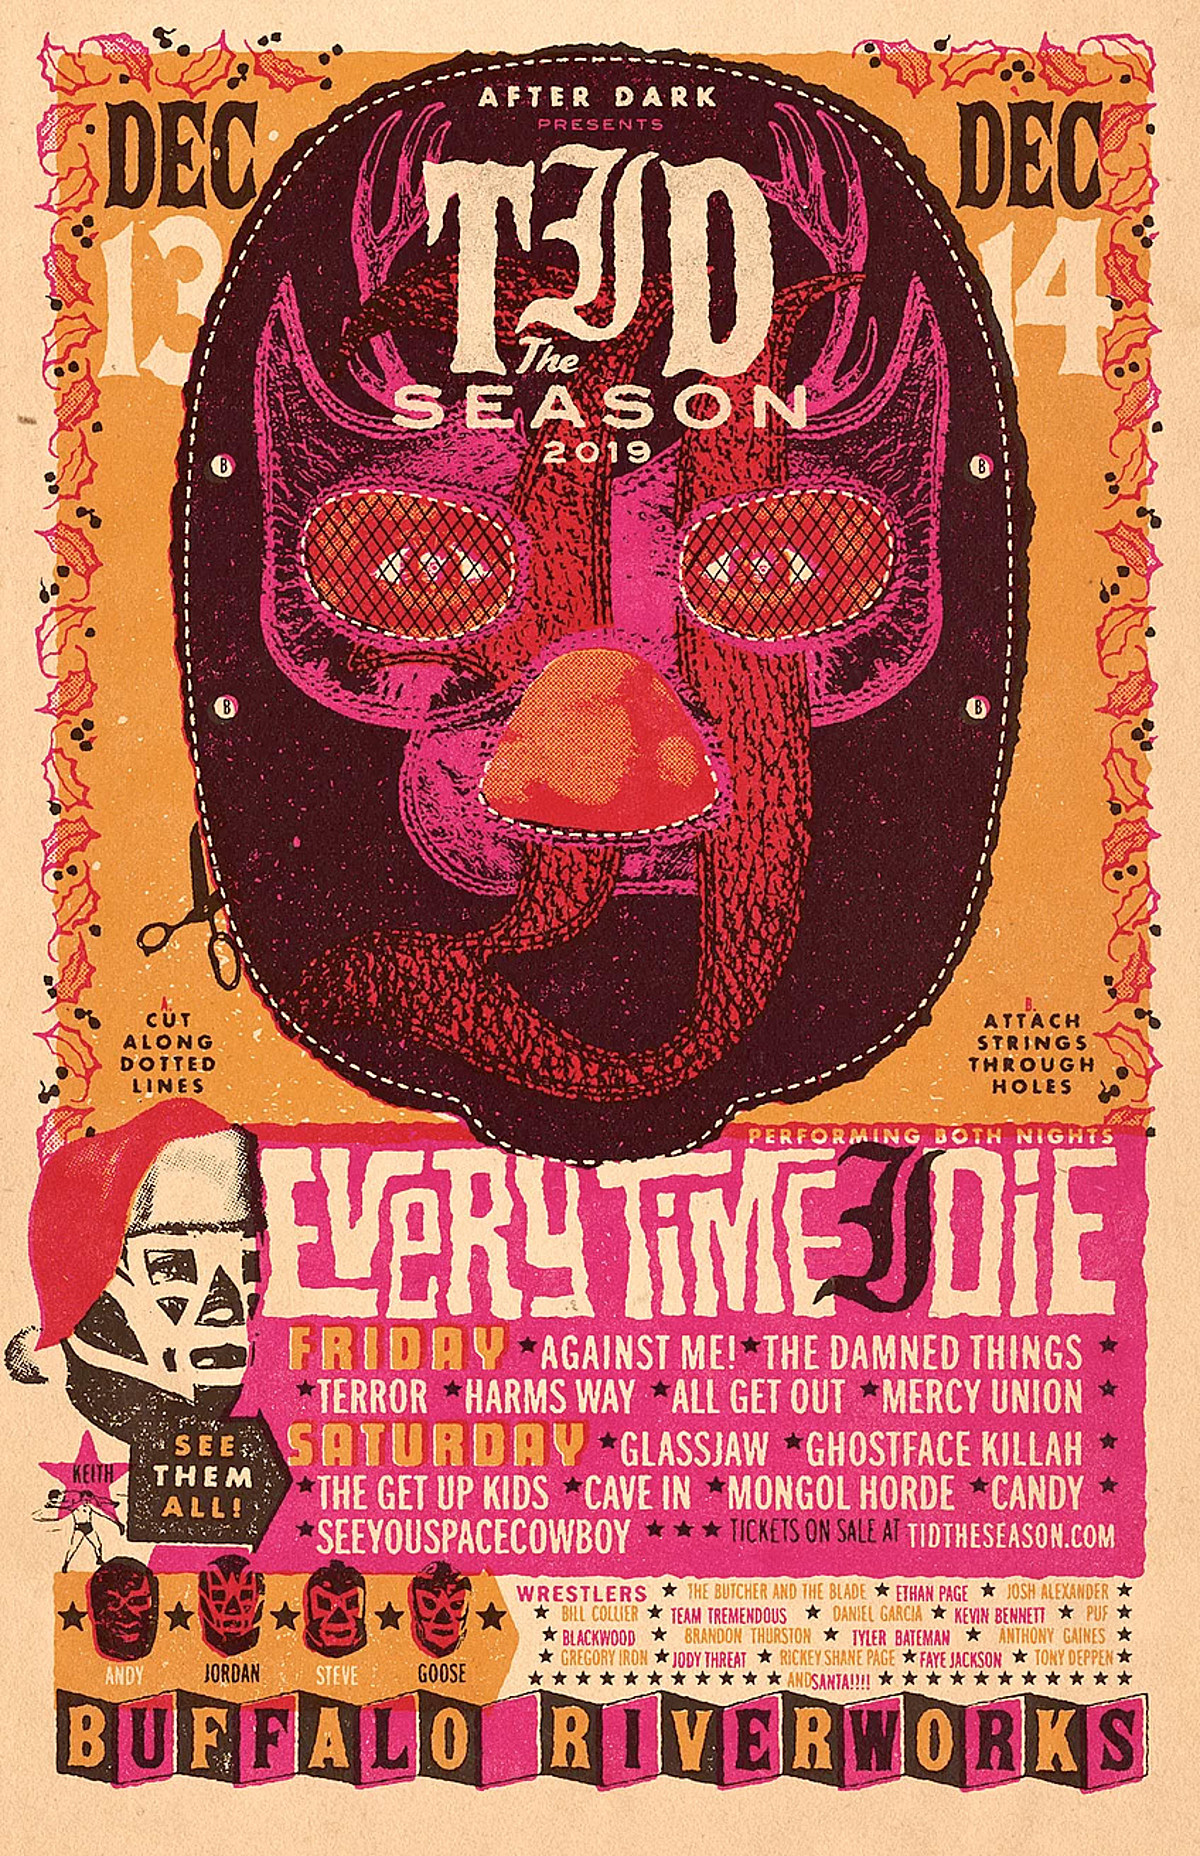 Etid Christmas Show 2020 Every Time I Die 2019 holiday show: Against Me!, Cave In, Glassjaw